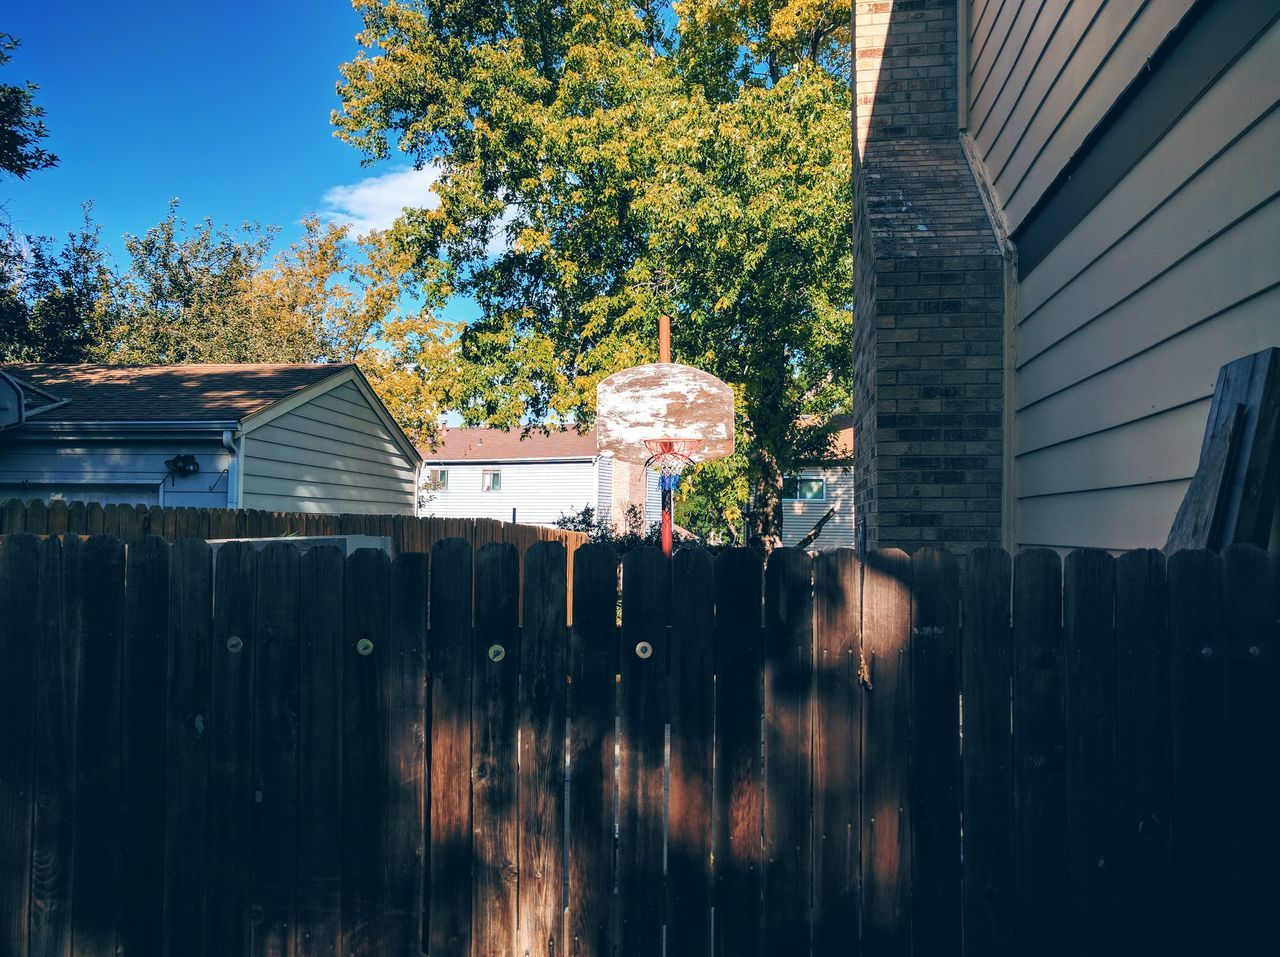 architecture, built structure, building exterior, tree, house, outdoors, day, no people, roof, sky, nature, tiled roof